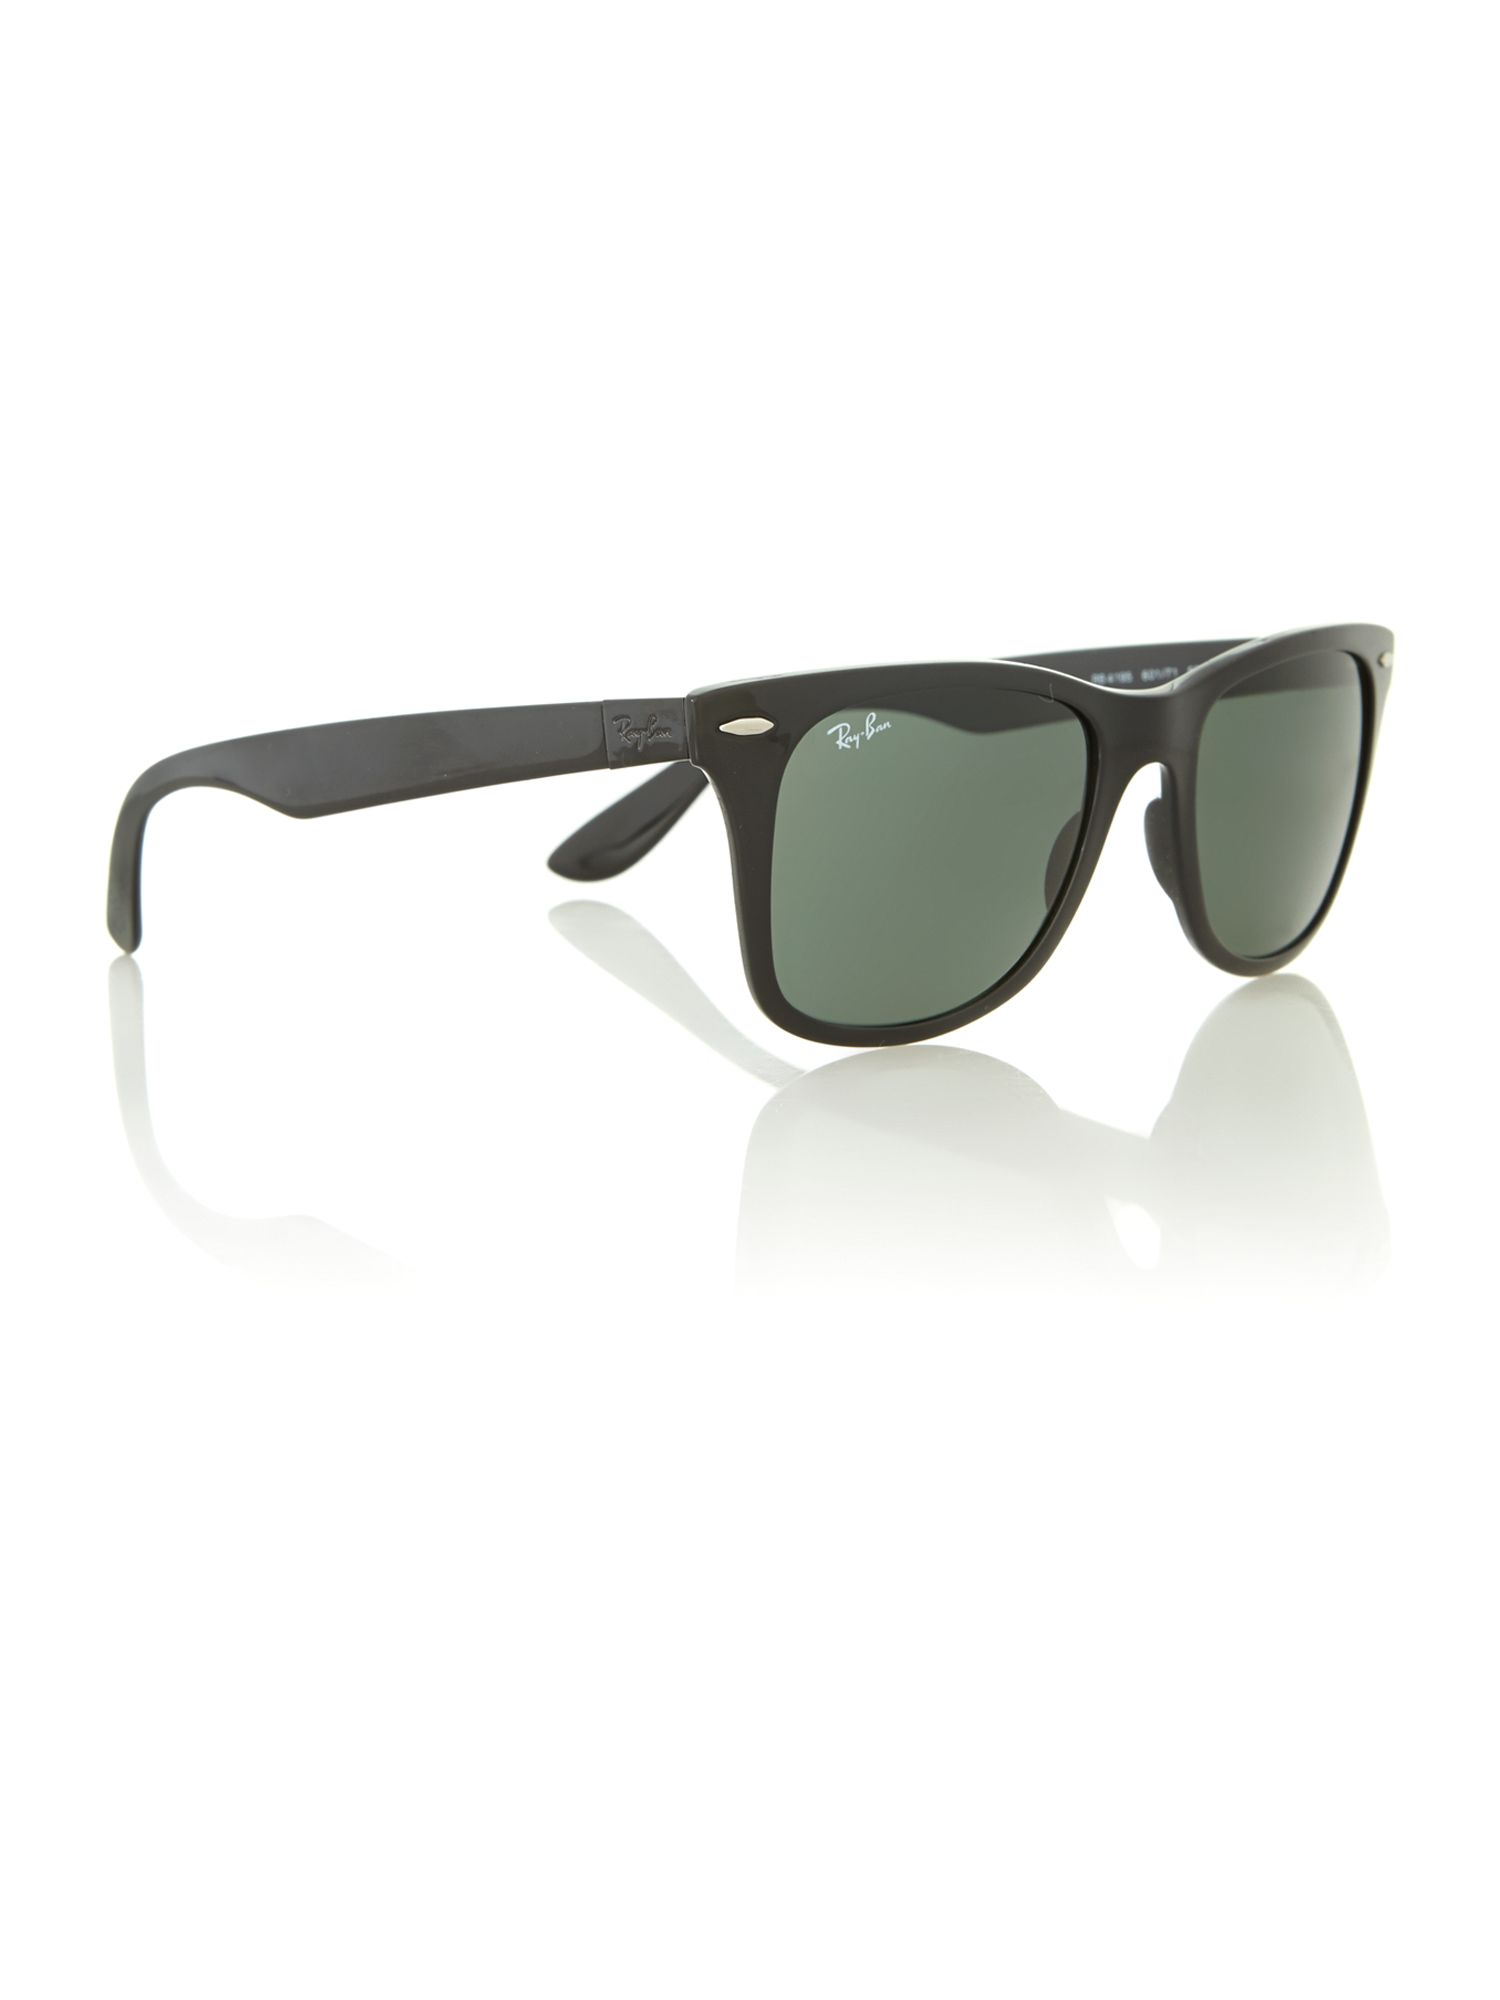 Men`s black light force wayfarer sunglasses